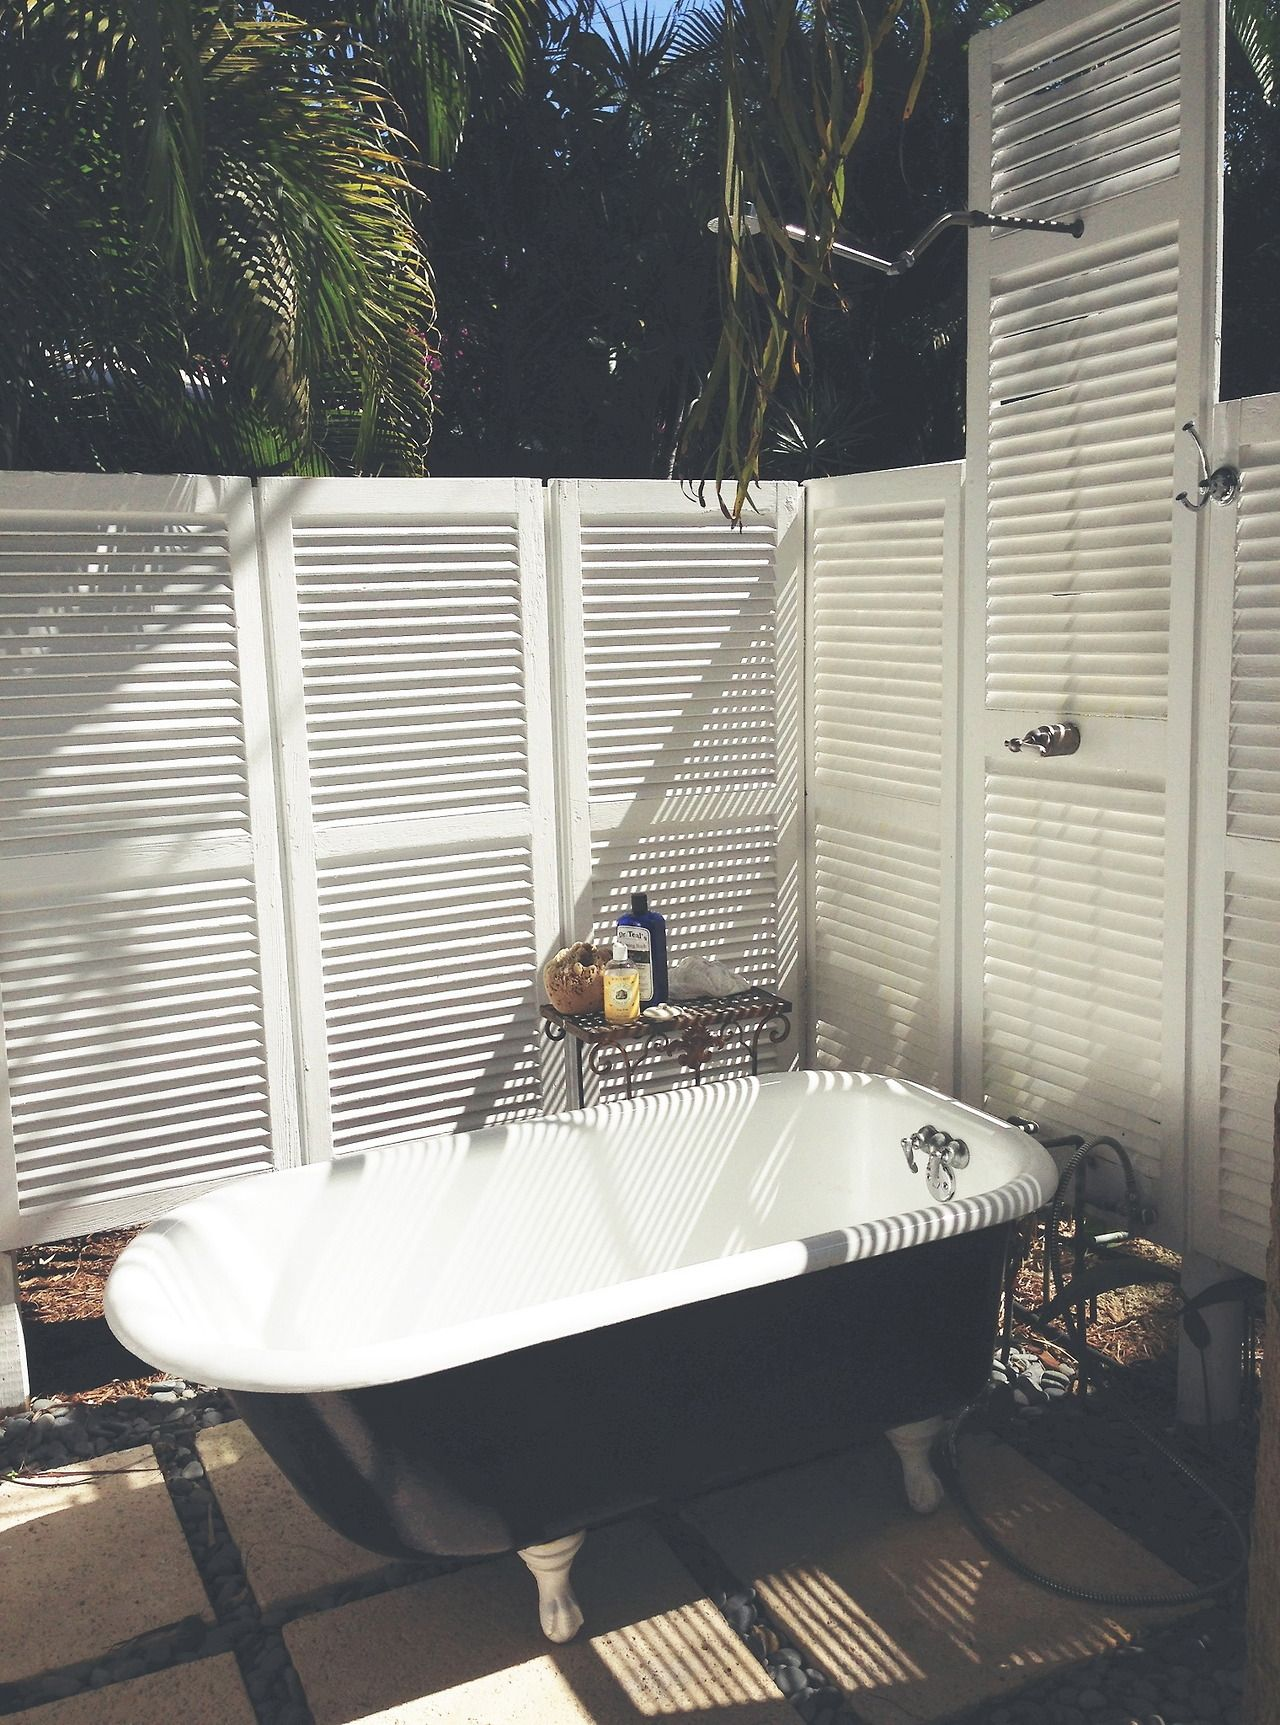 Outdoor tub and shower. I Like the idea of this but not the upkeep ...